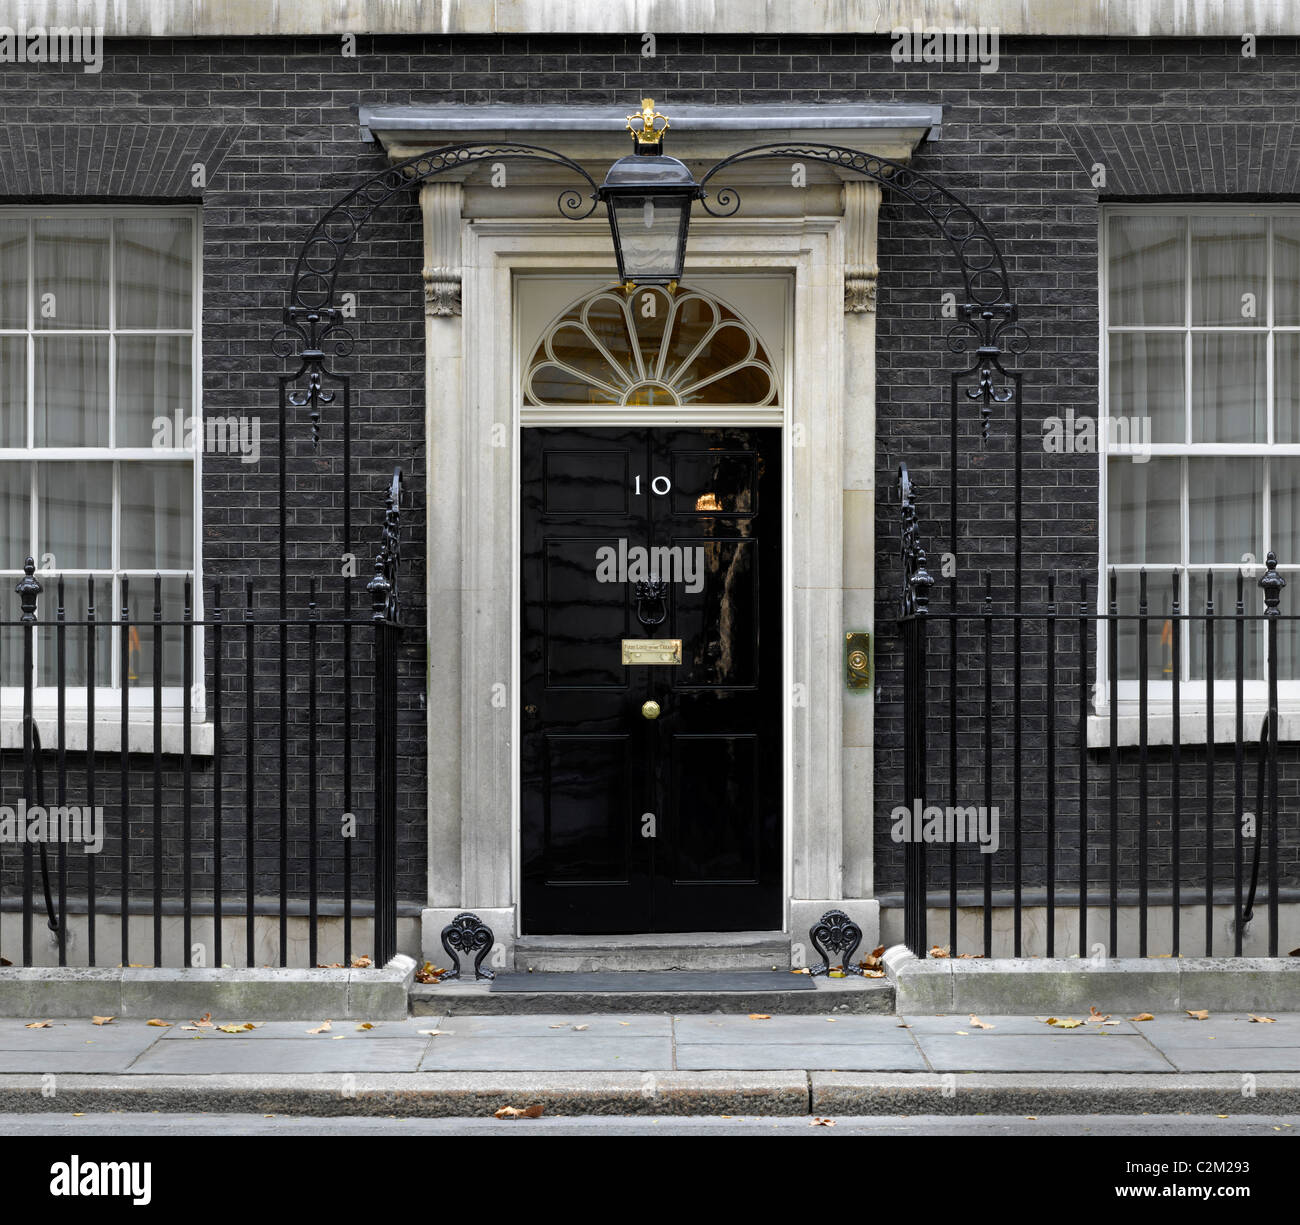 Number 10 Downing Street, Westminster, London. - Stock Image